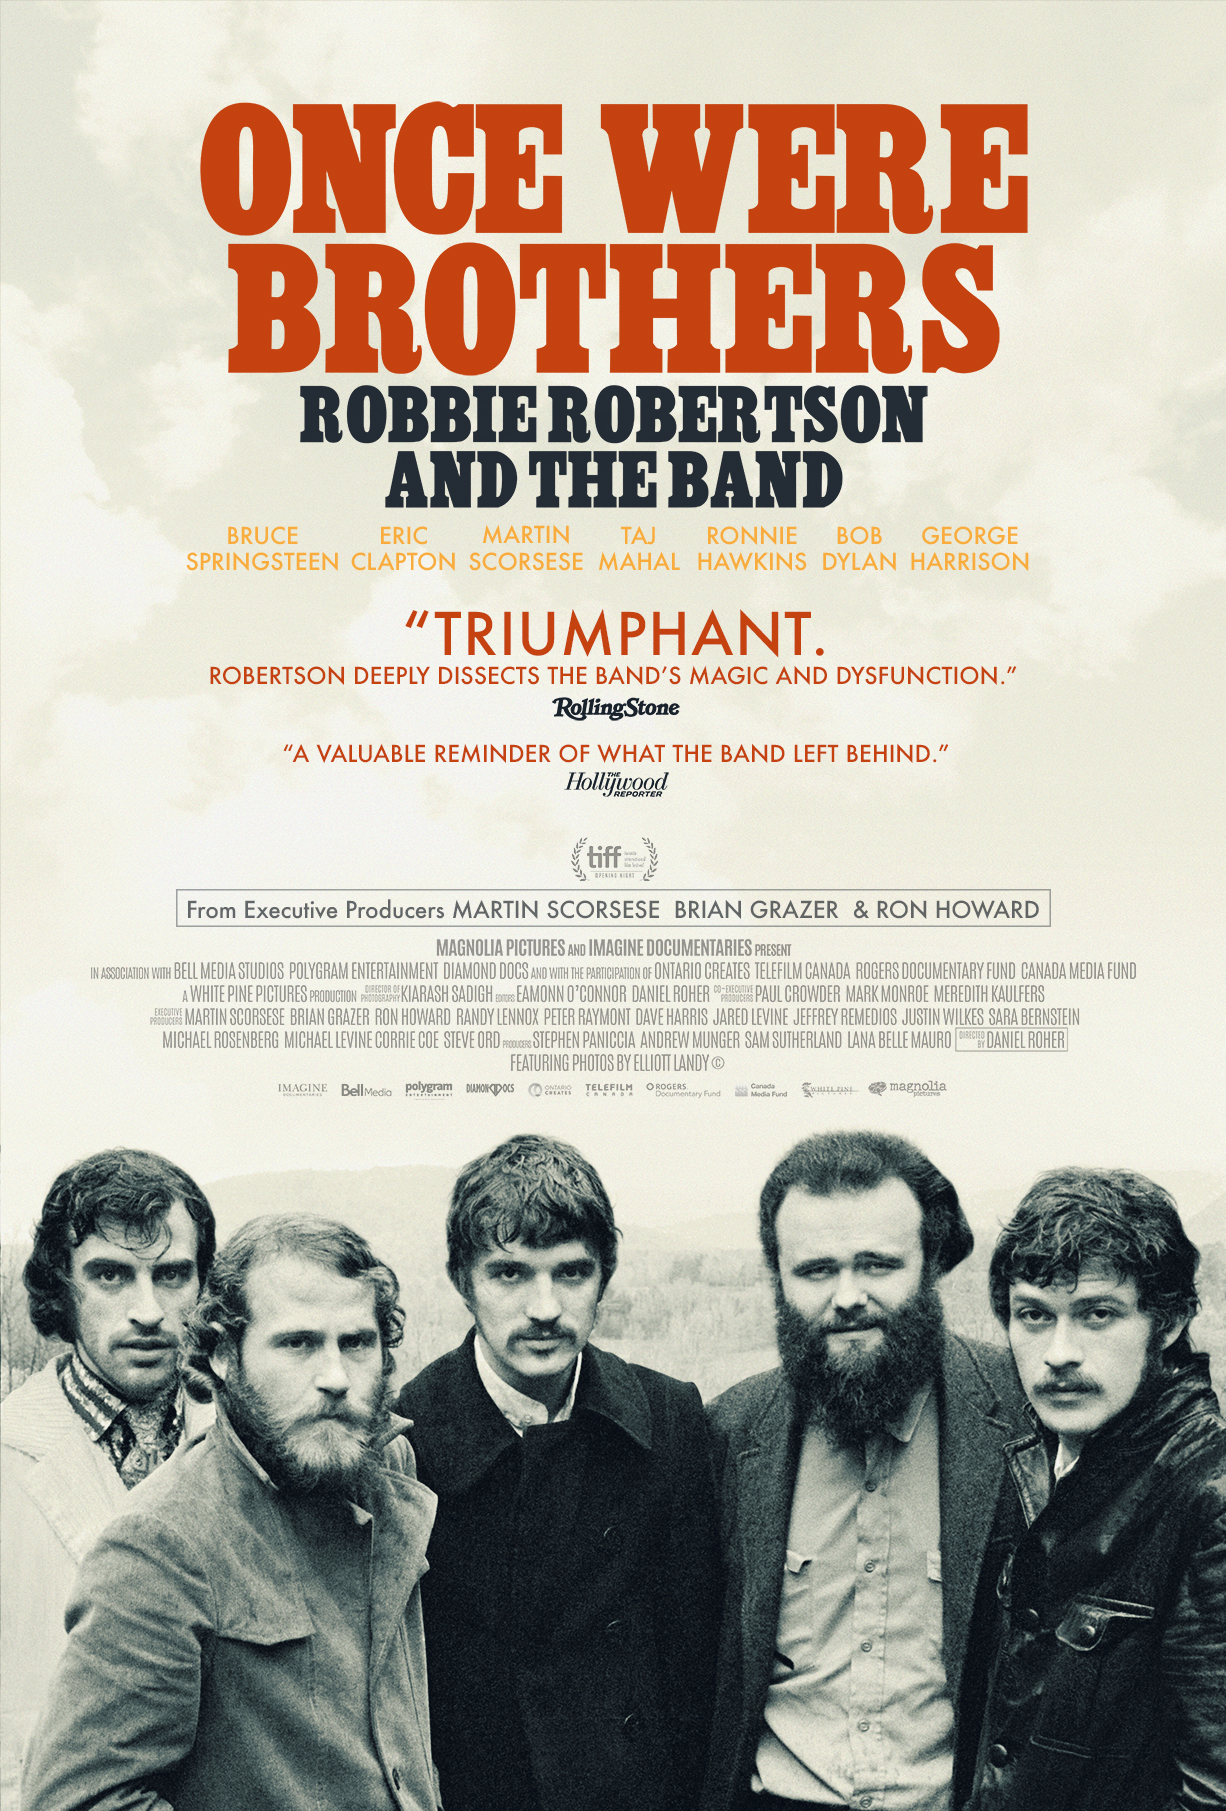 Watch the official trailer for The Band documentary ONCE WERE BROTHERS